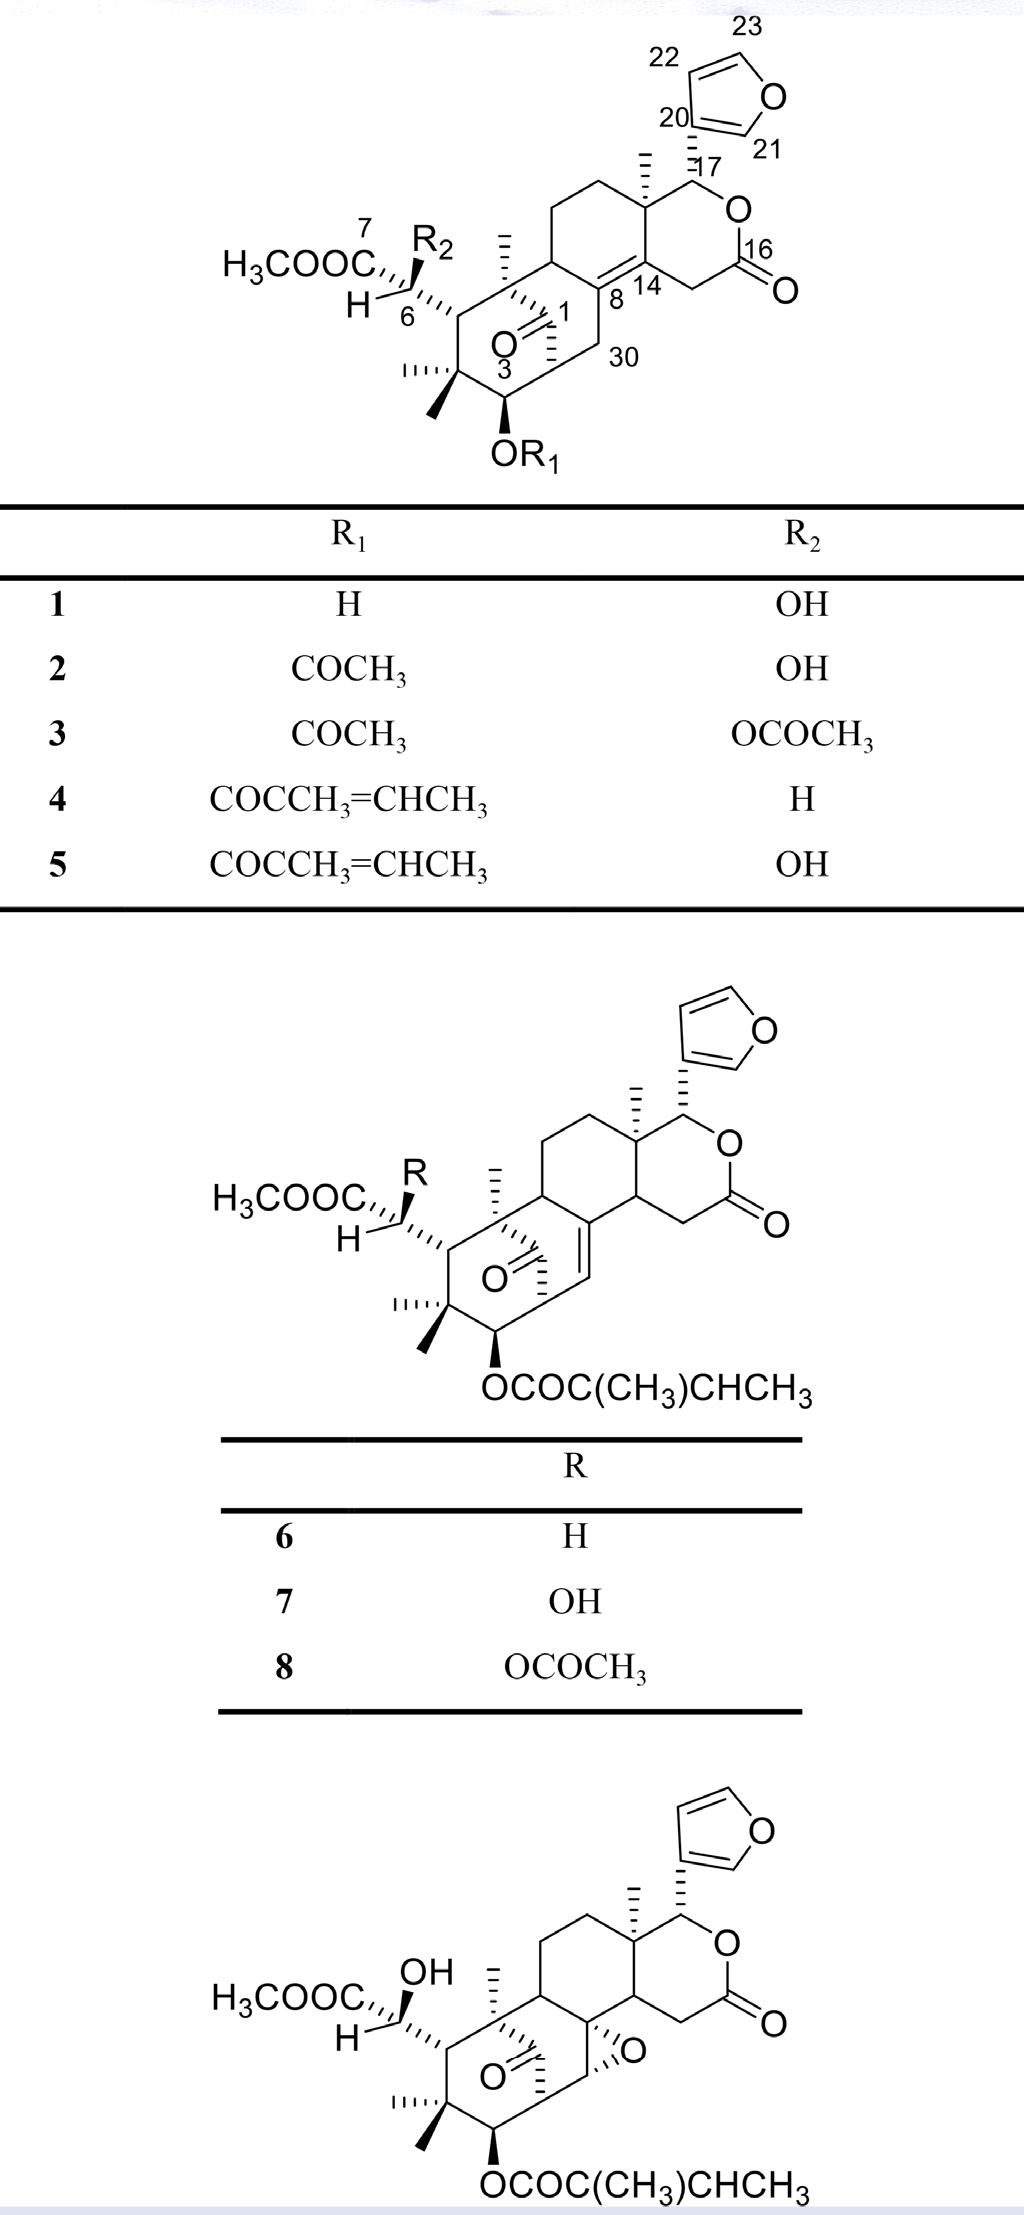 Figure 1: The structures of compounds 1-9